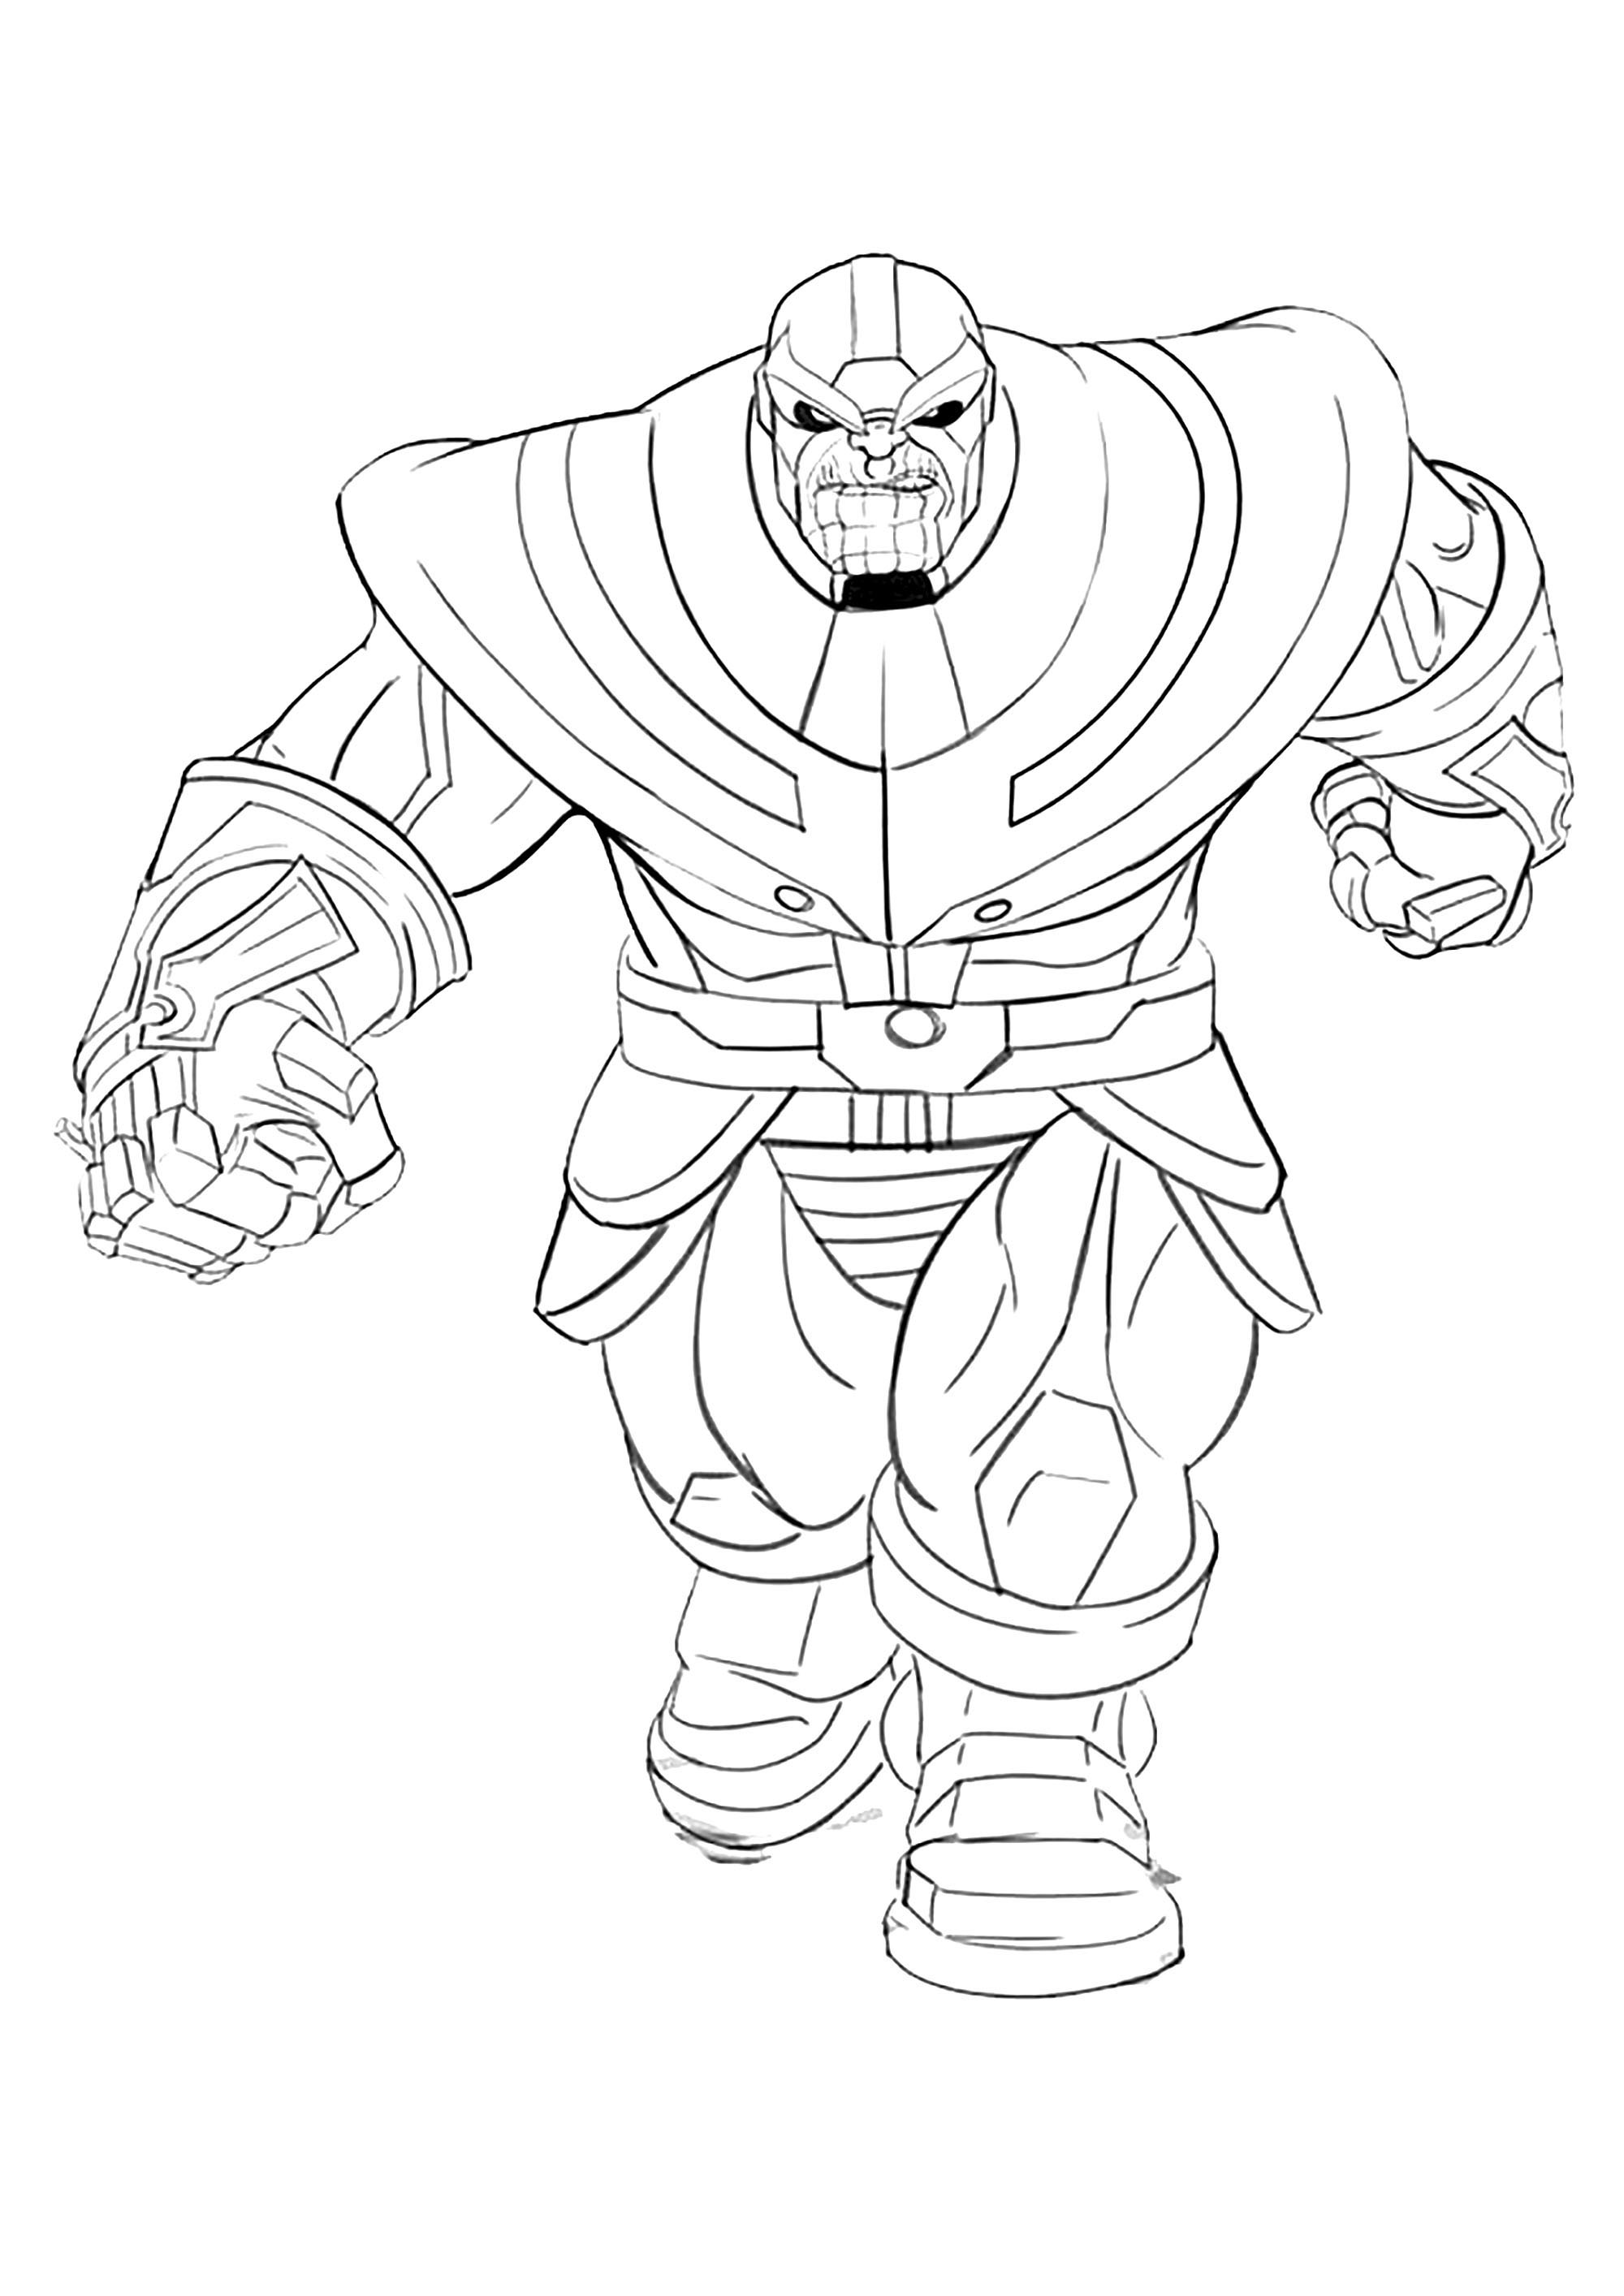 Thanos coloring page to print and color